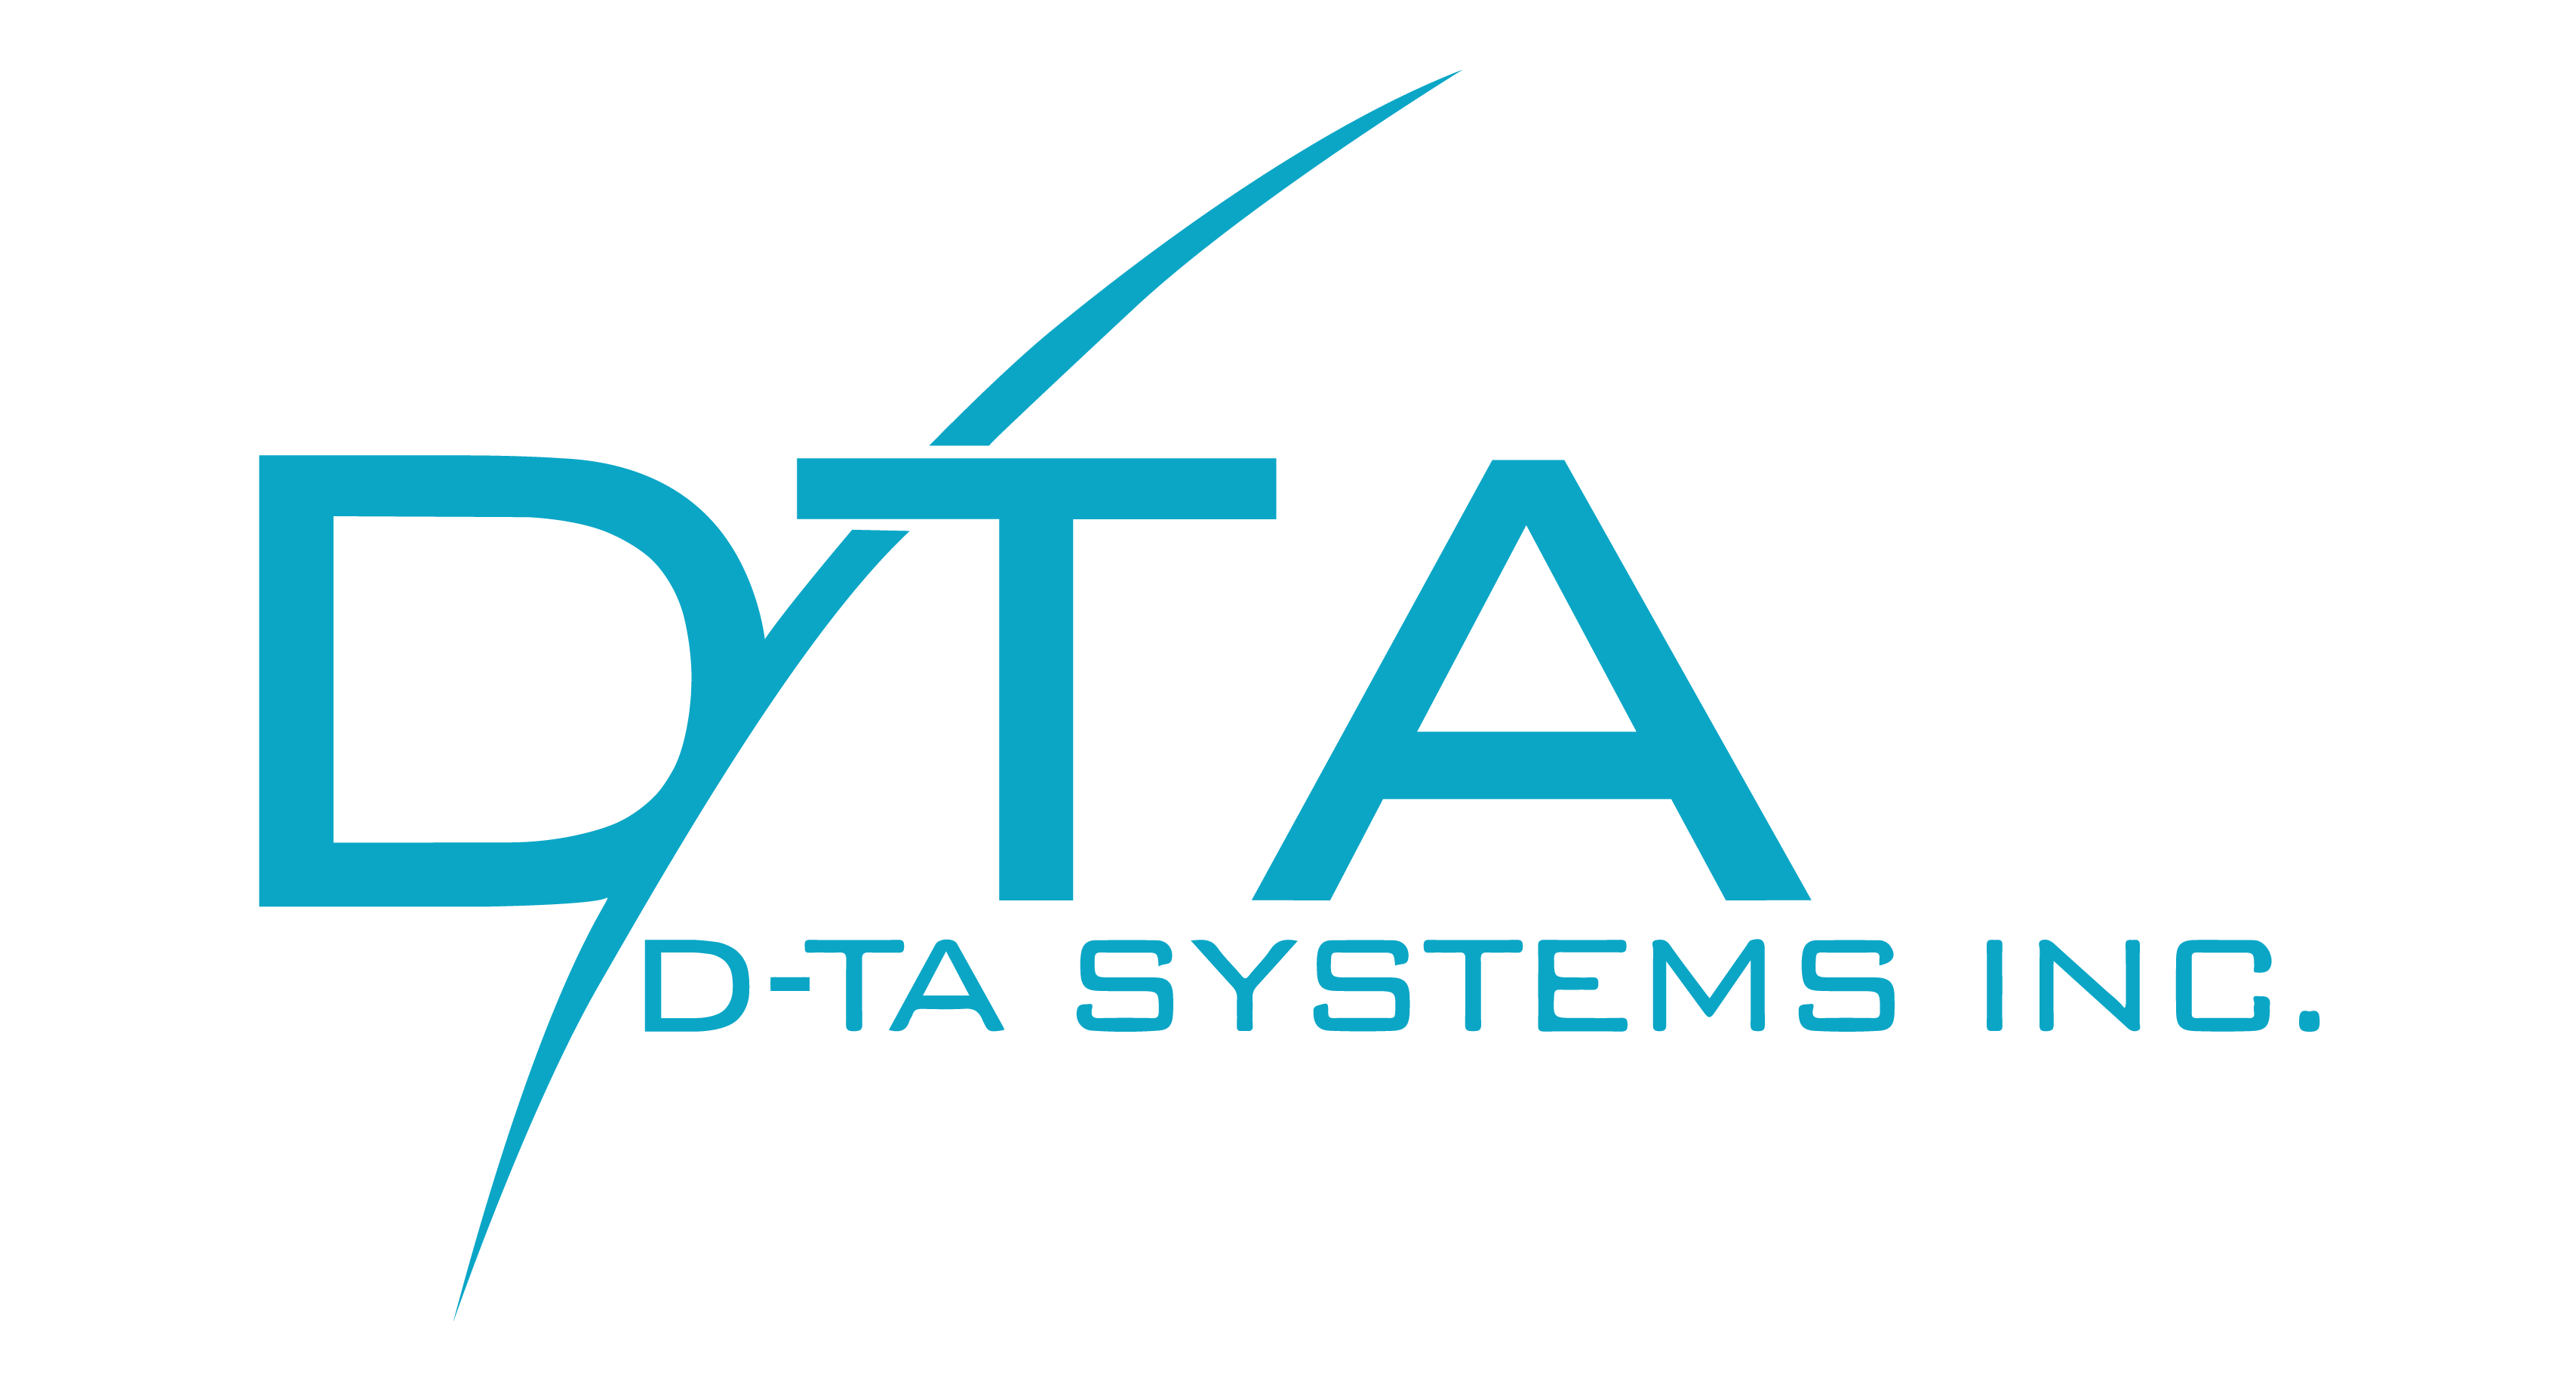 D-TA Systems Inc  – A Sensor Interface and Processing Company